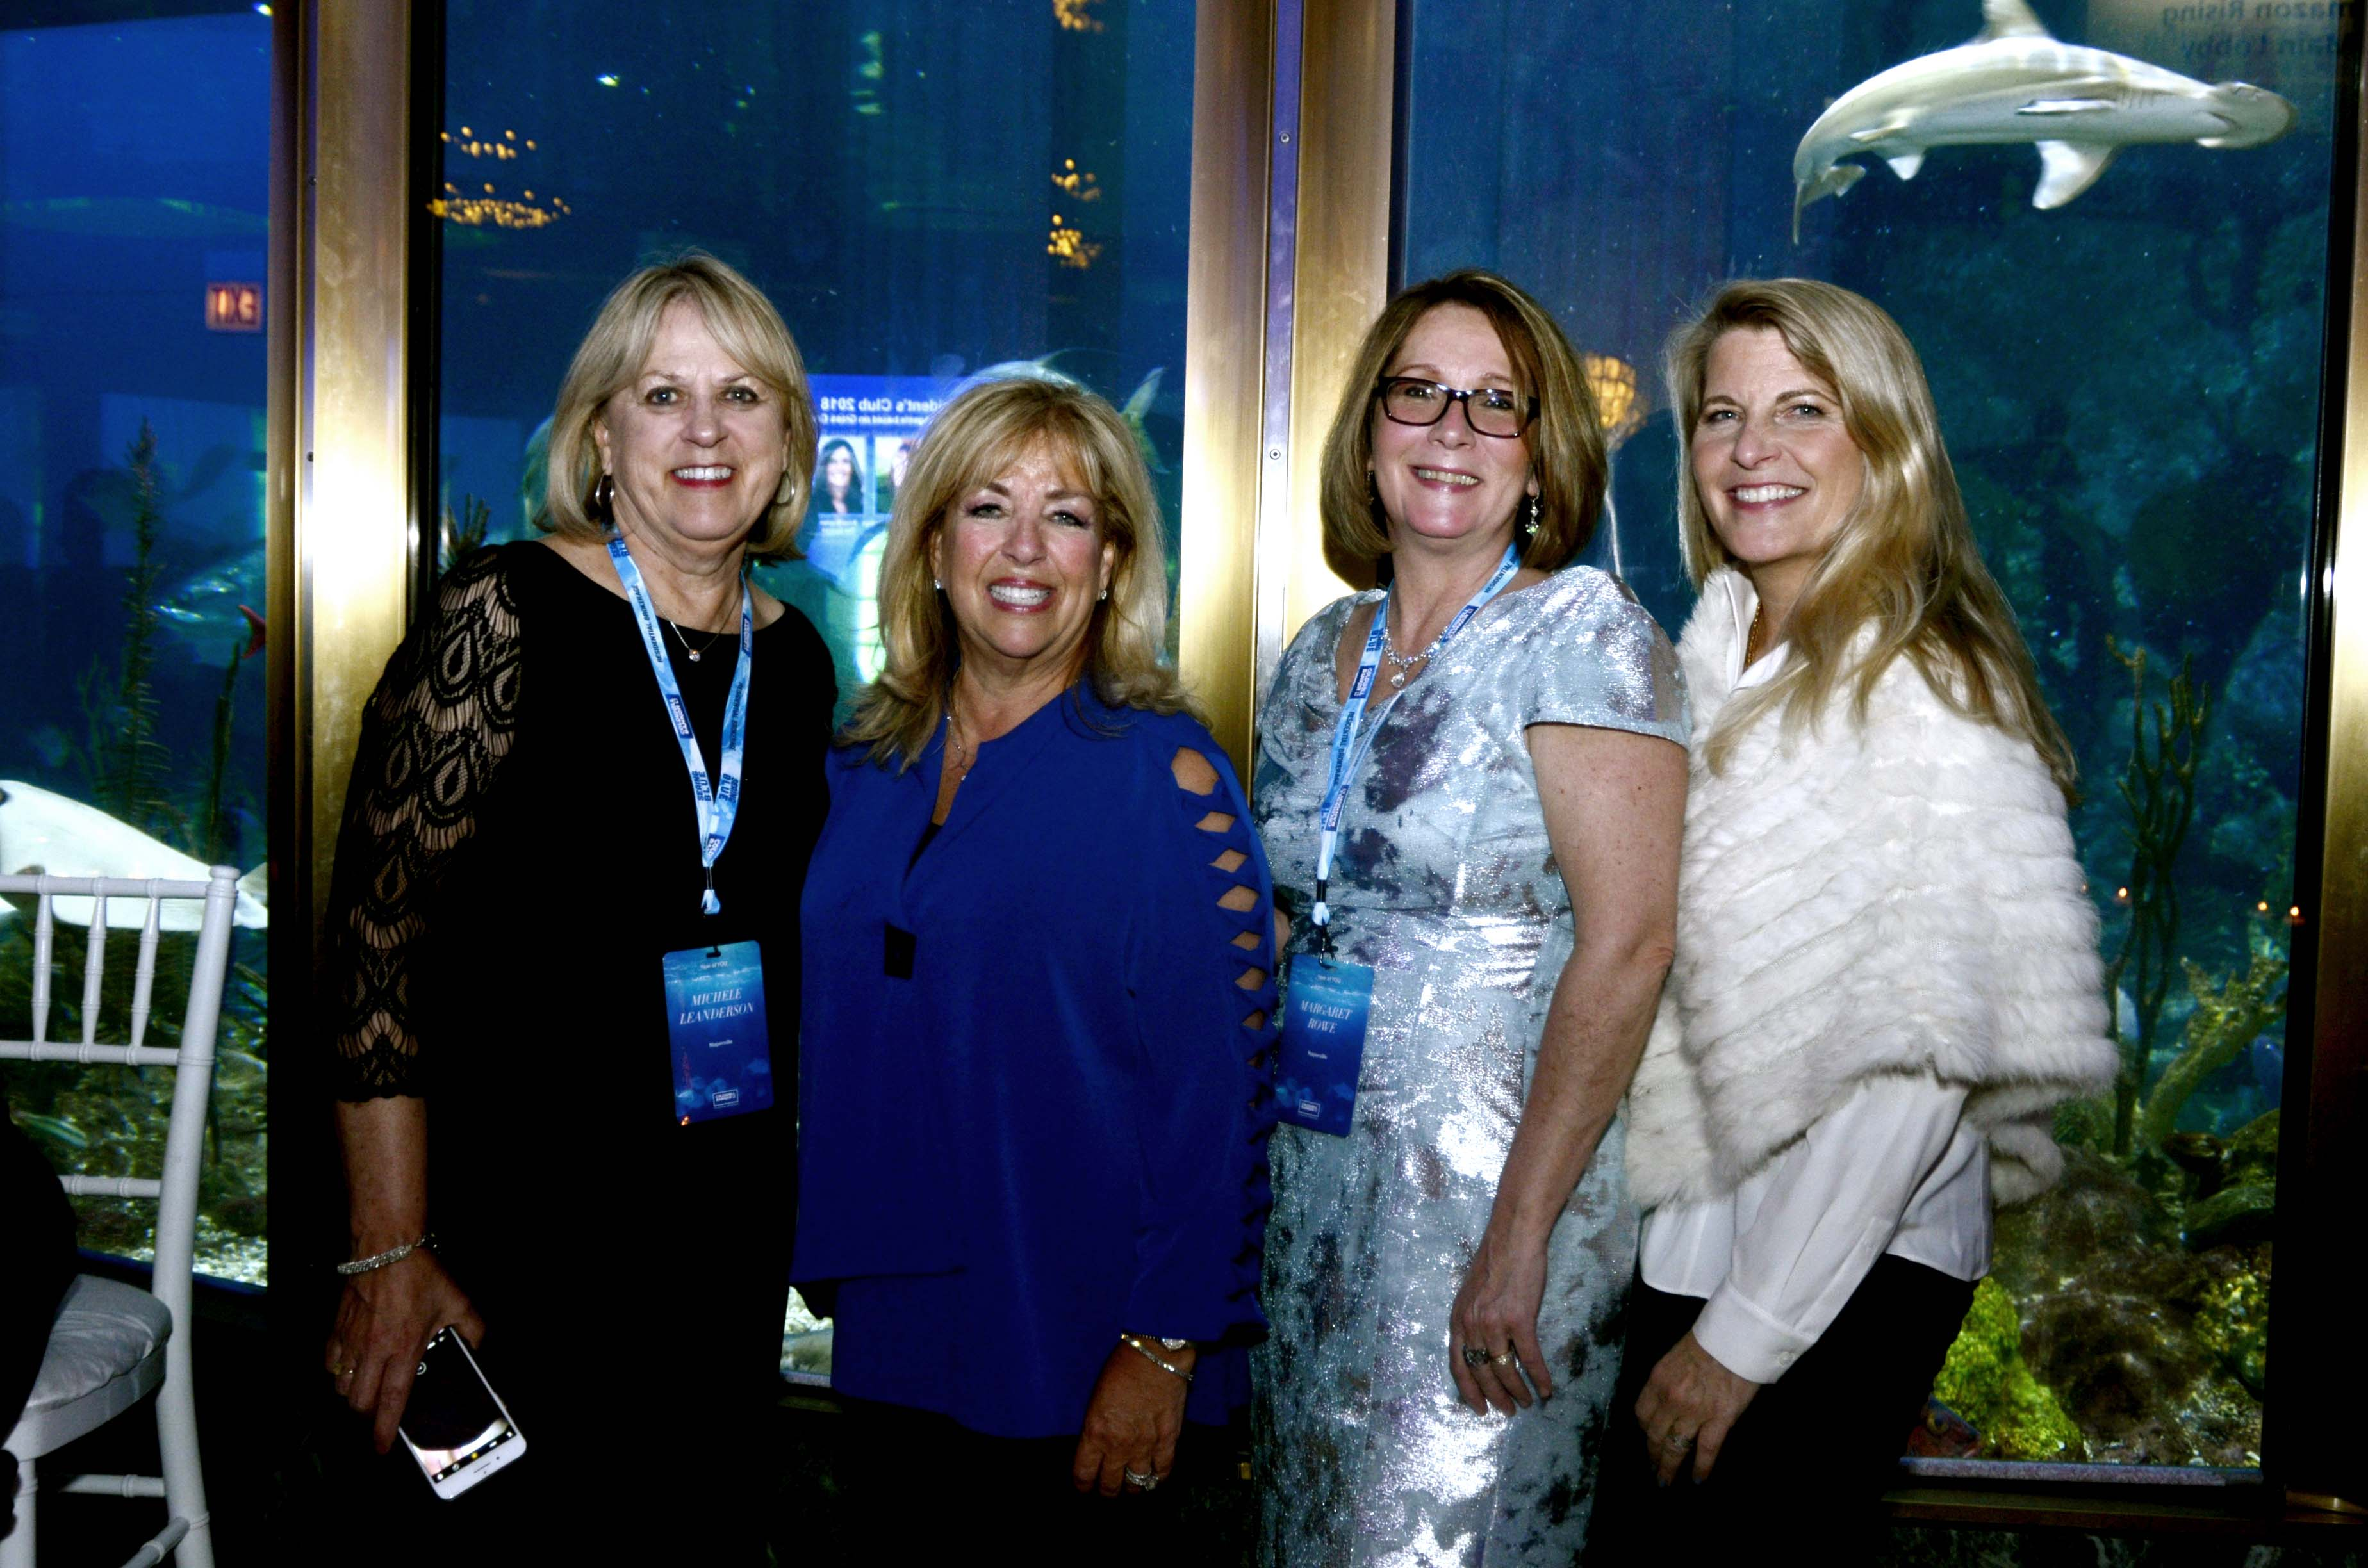 michelle-leanderson-coldwell-banker-naperville-fran-broude-coldwell-banker-residential-president-margaret-rowe-coldwell-banker-naperville-karen-arenson-coldwell-banker-winnetka.jpg